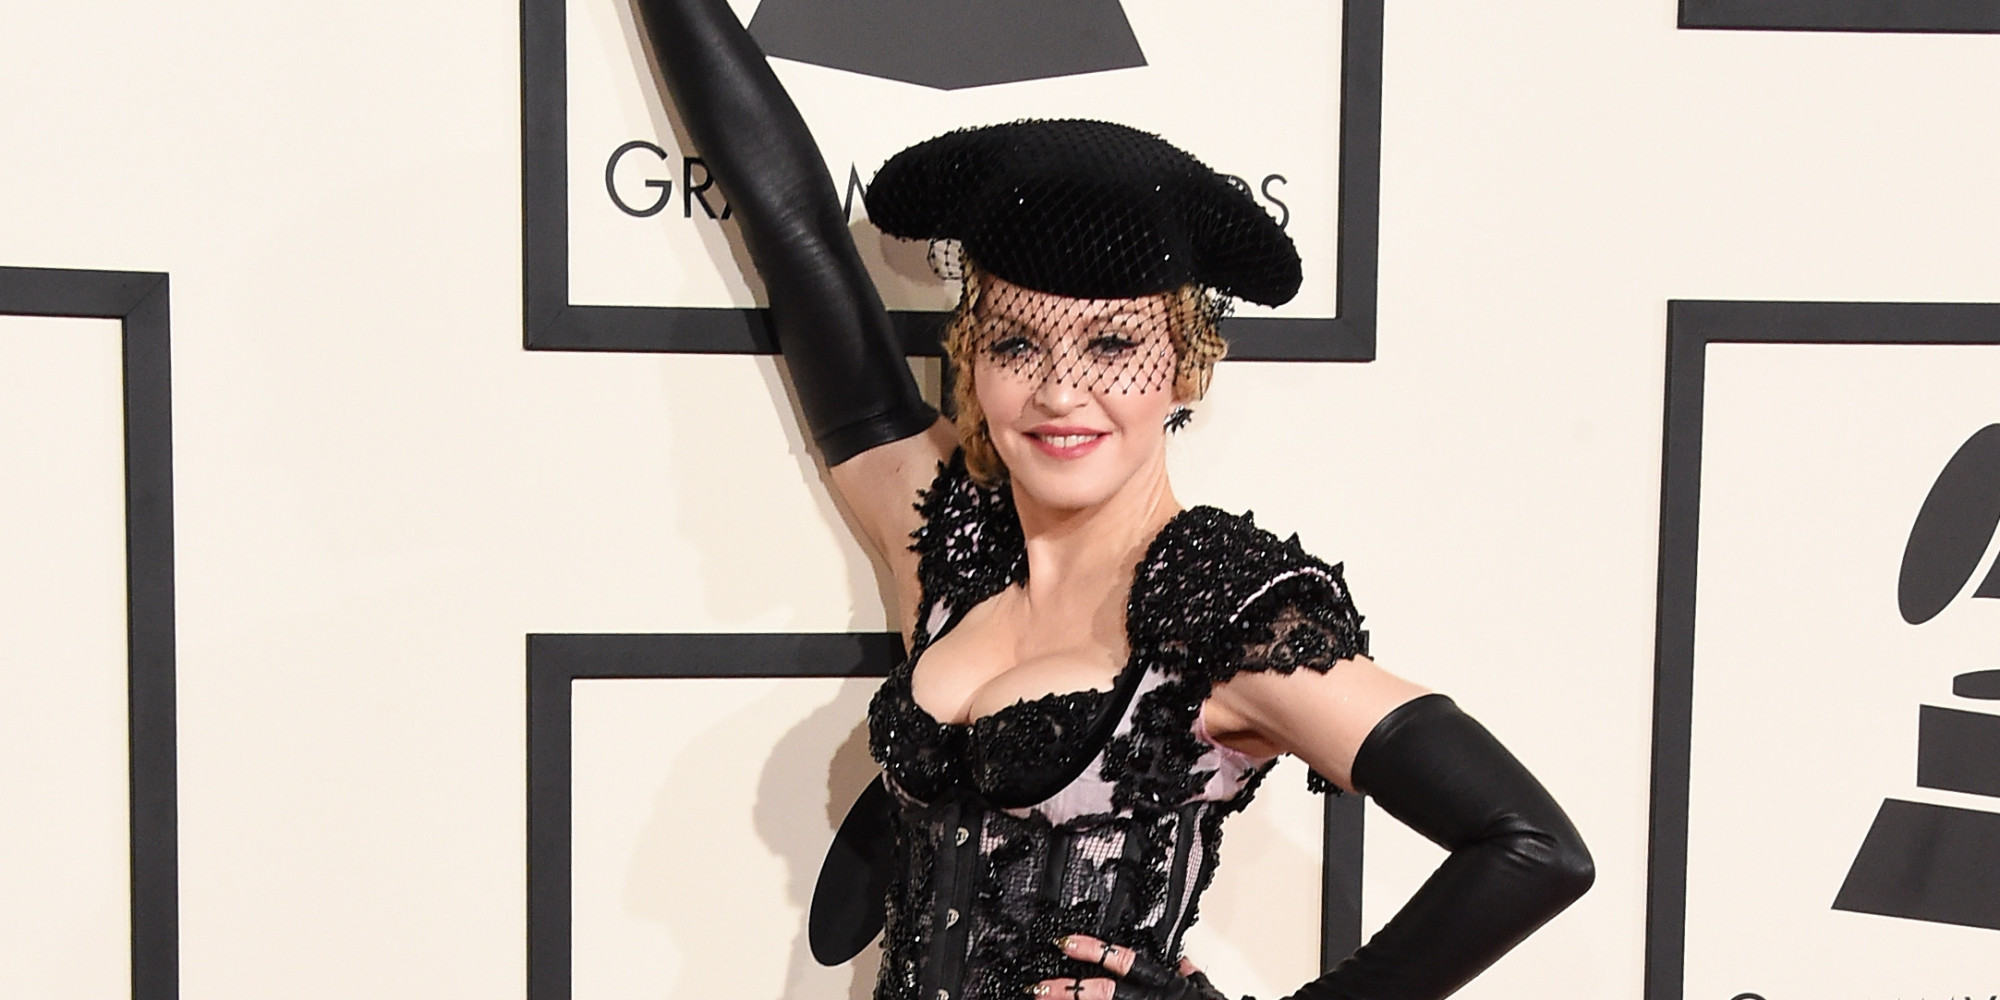 Grammys: Madonna Moons Everyone On The Red Carpet At The Grammys